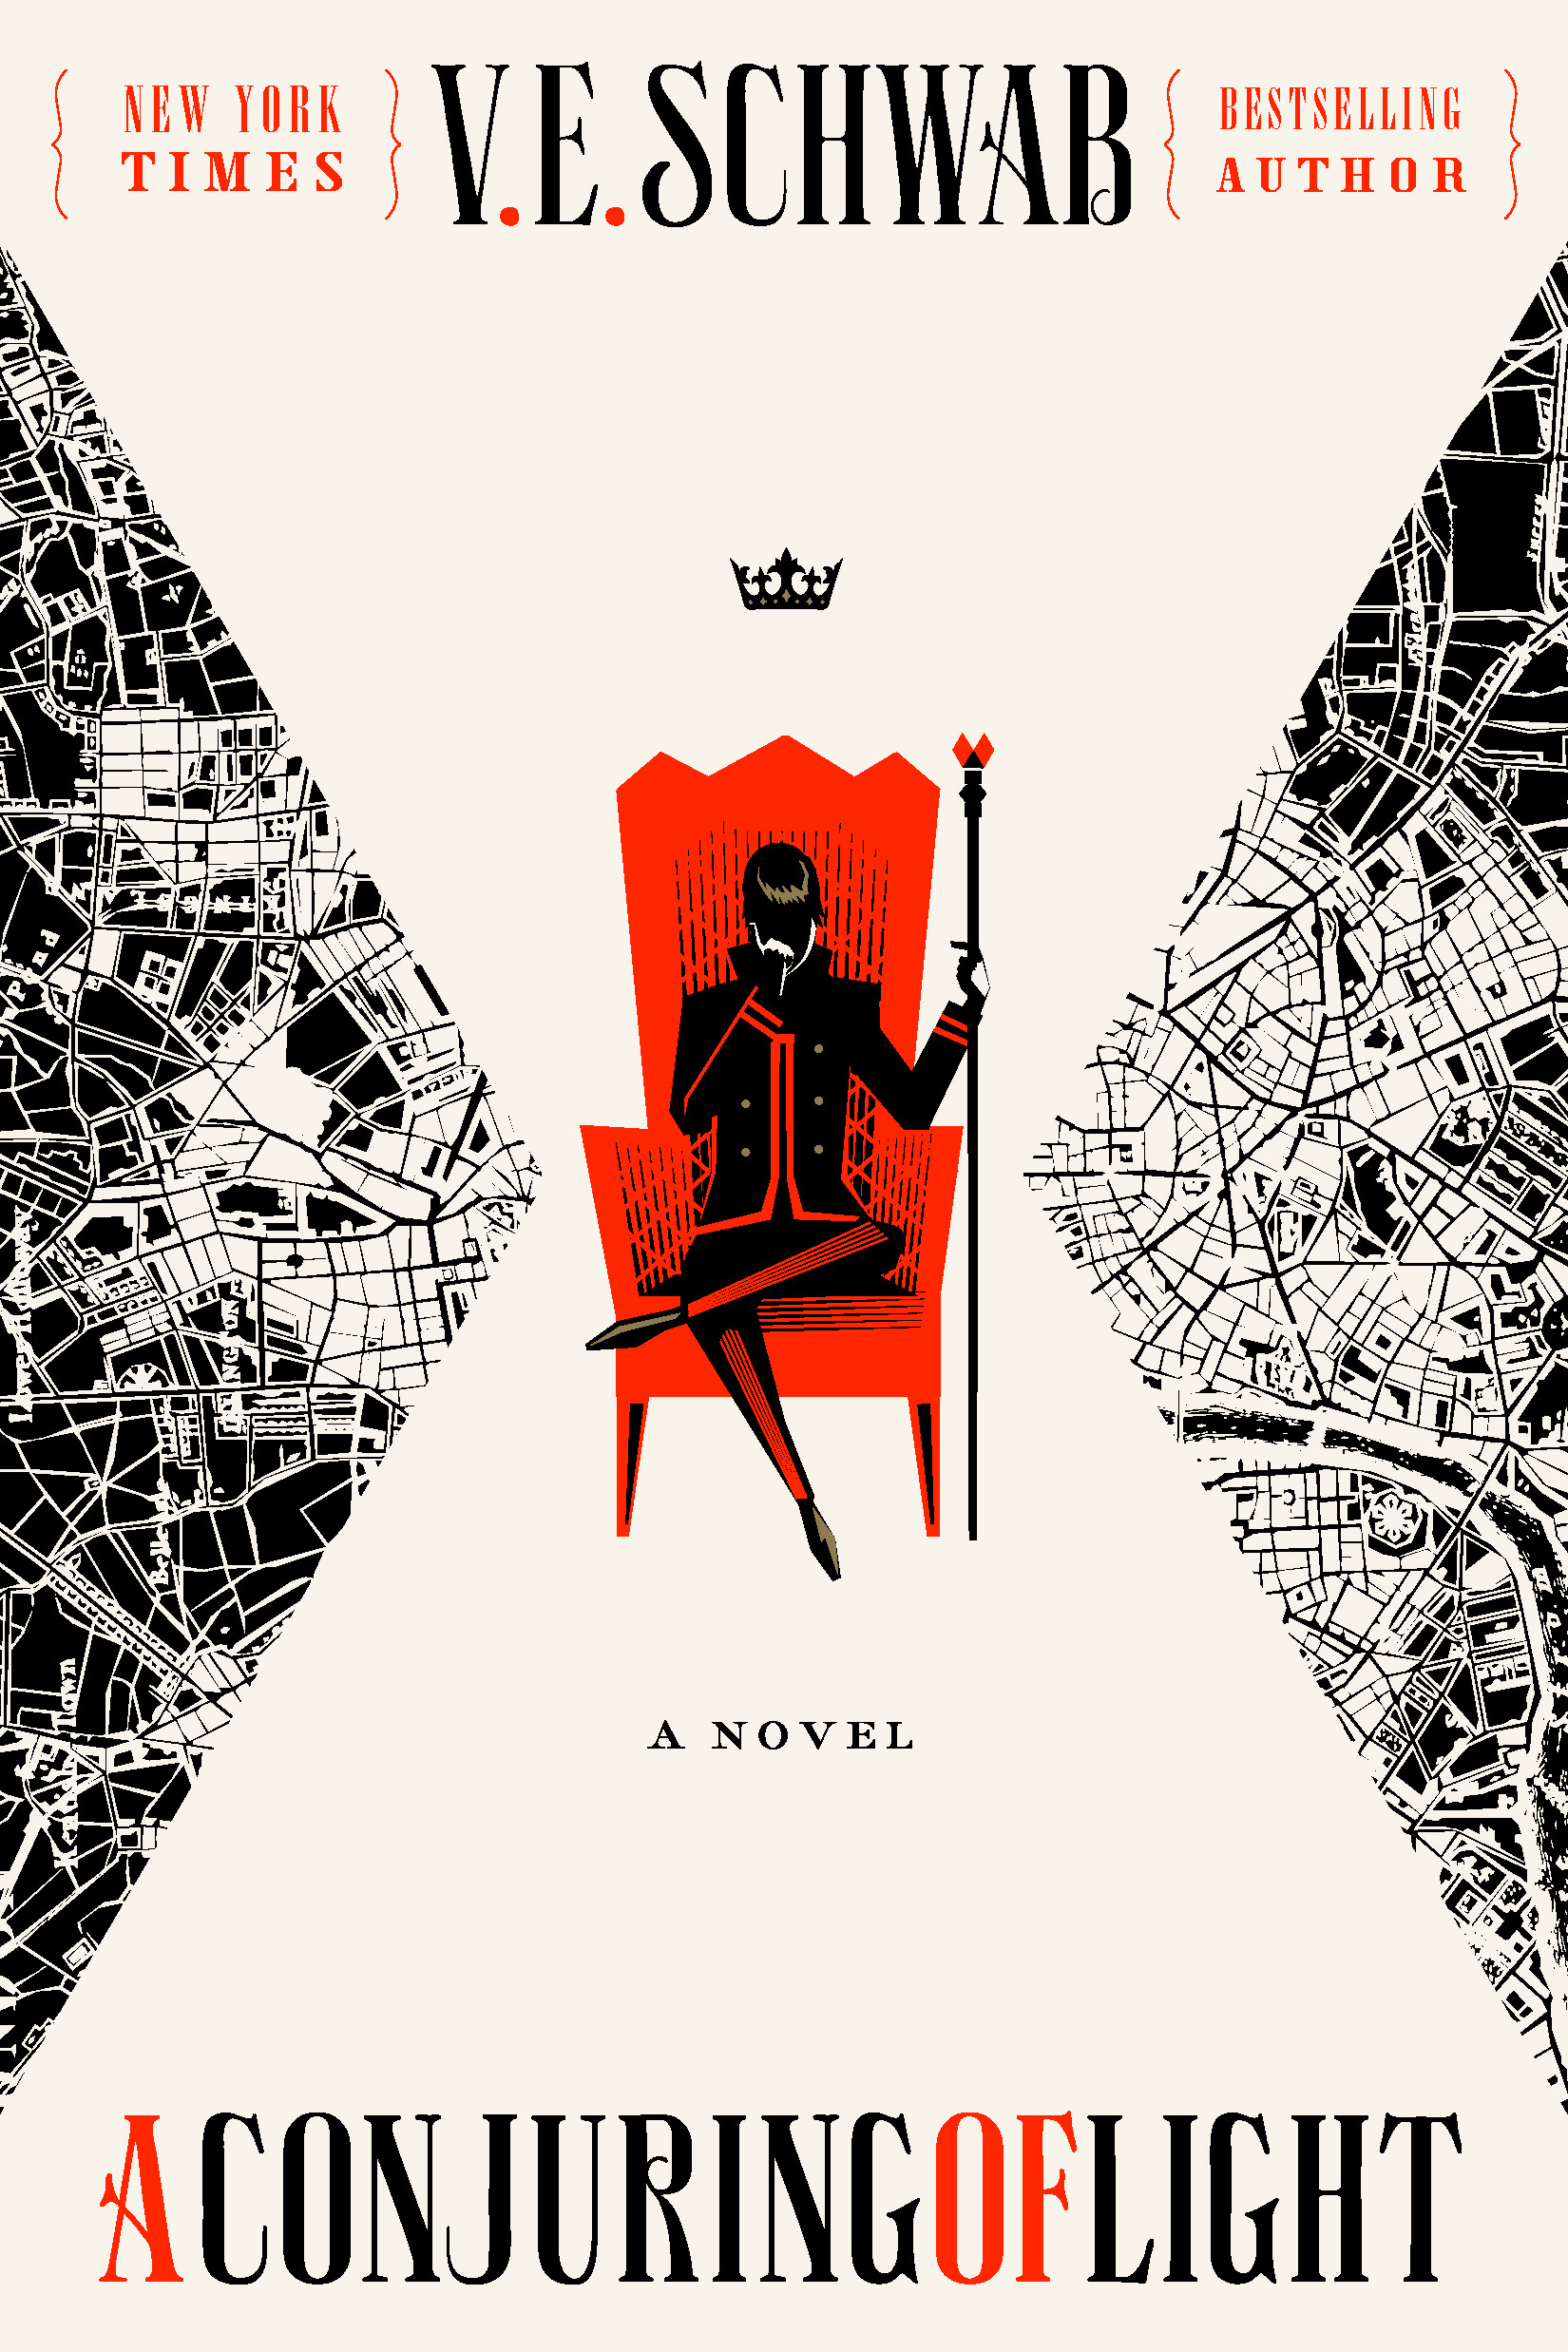 A Conjuring of Light by V.E. Schwab, Victoria Schwab